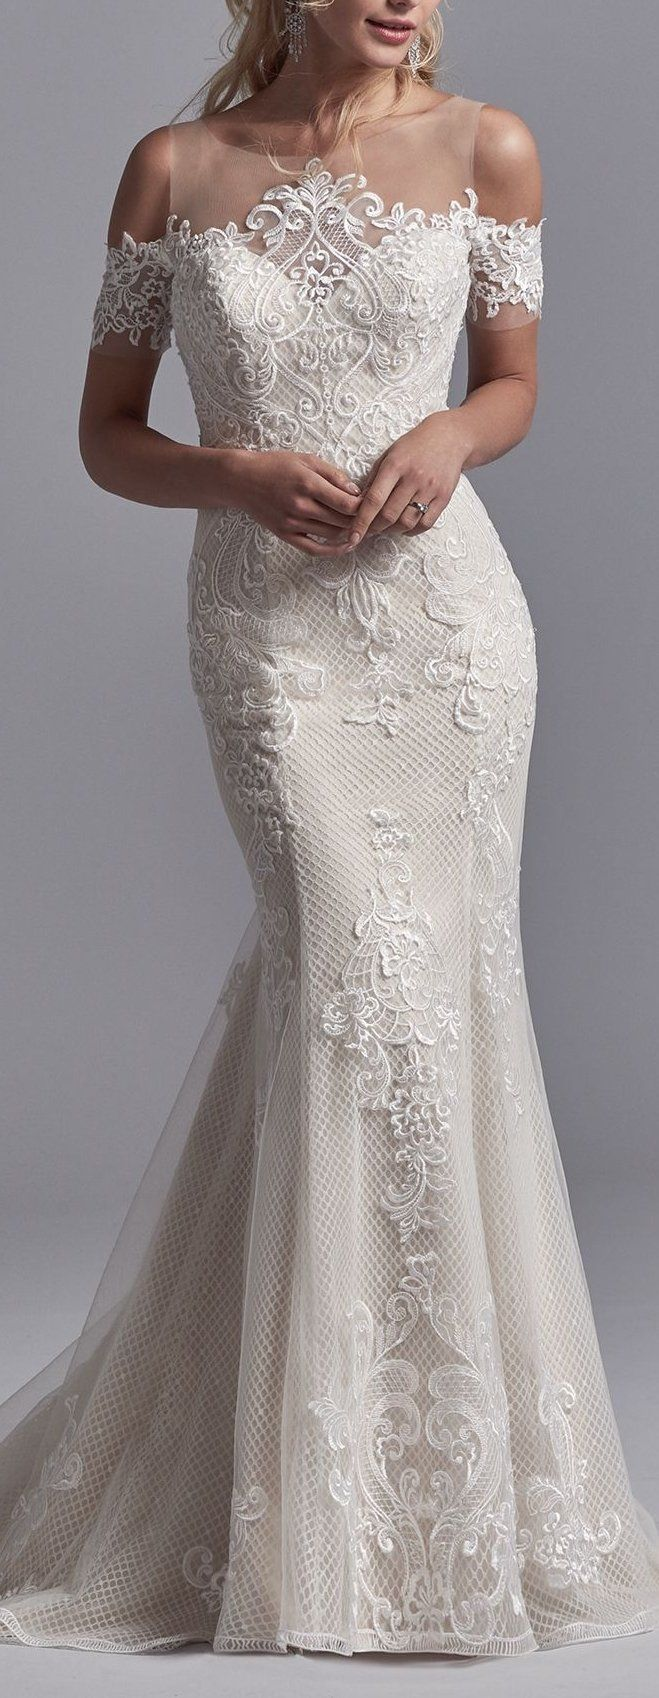 Maggie sottero wedding dresses shoulder sleeve illusion neckline